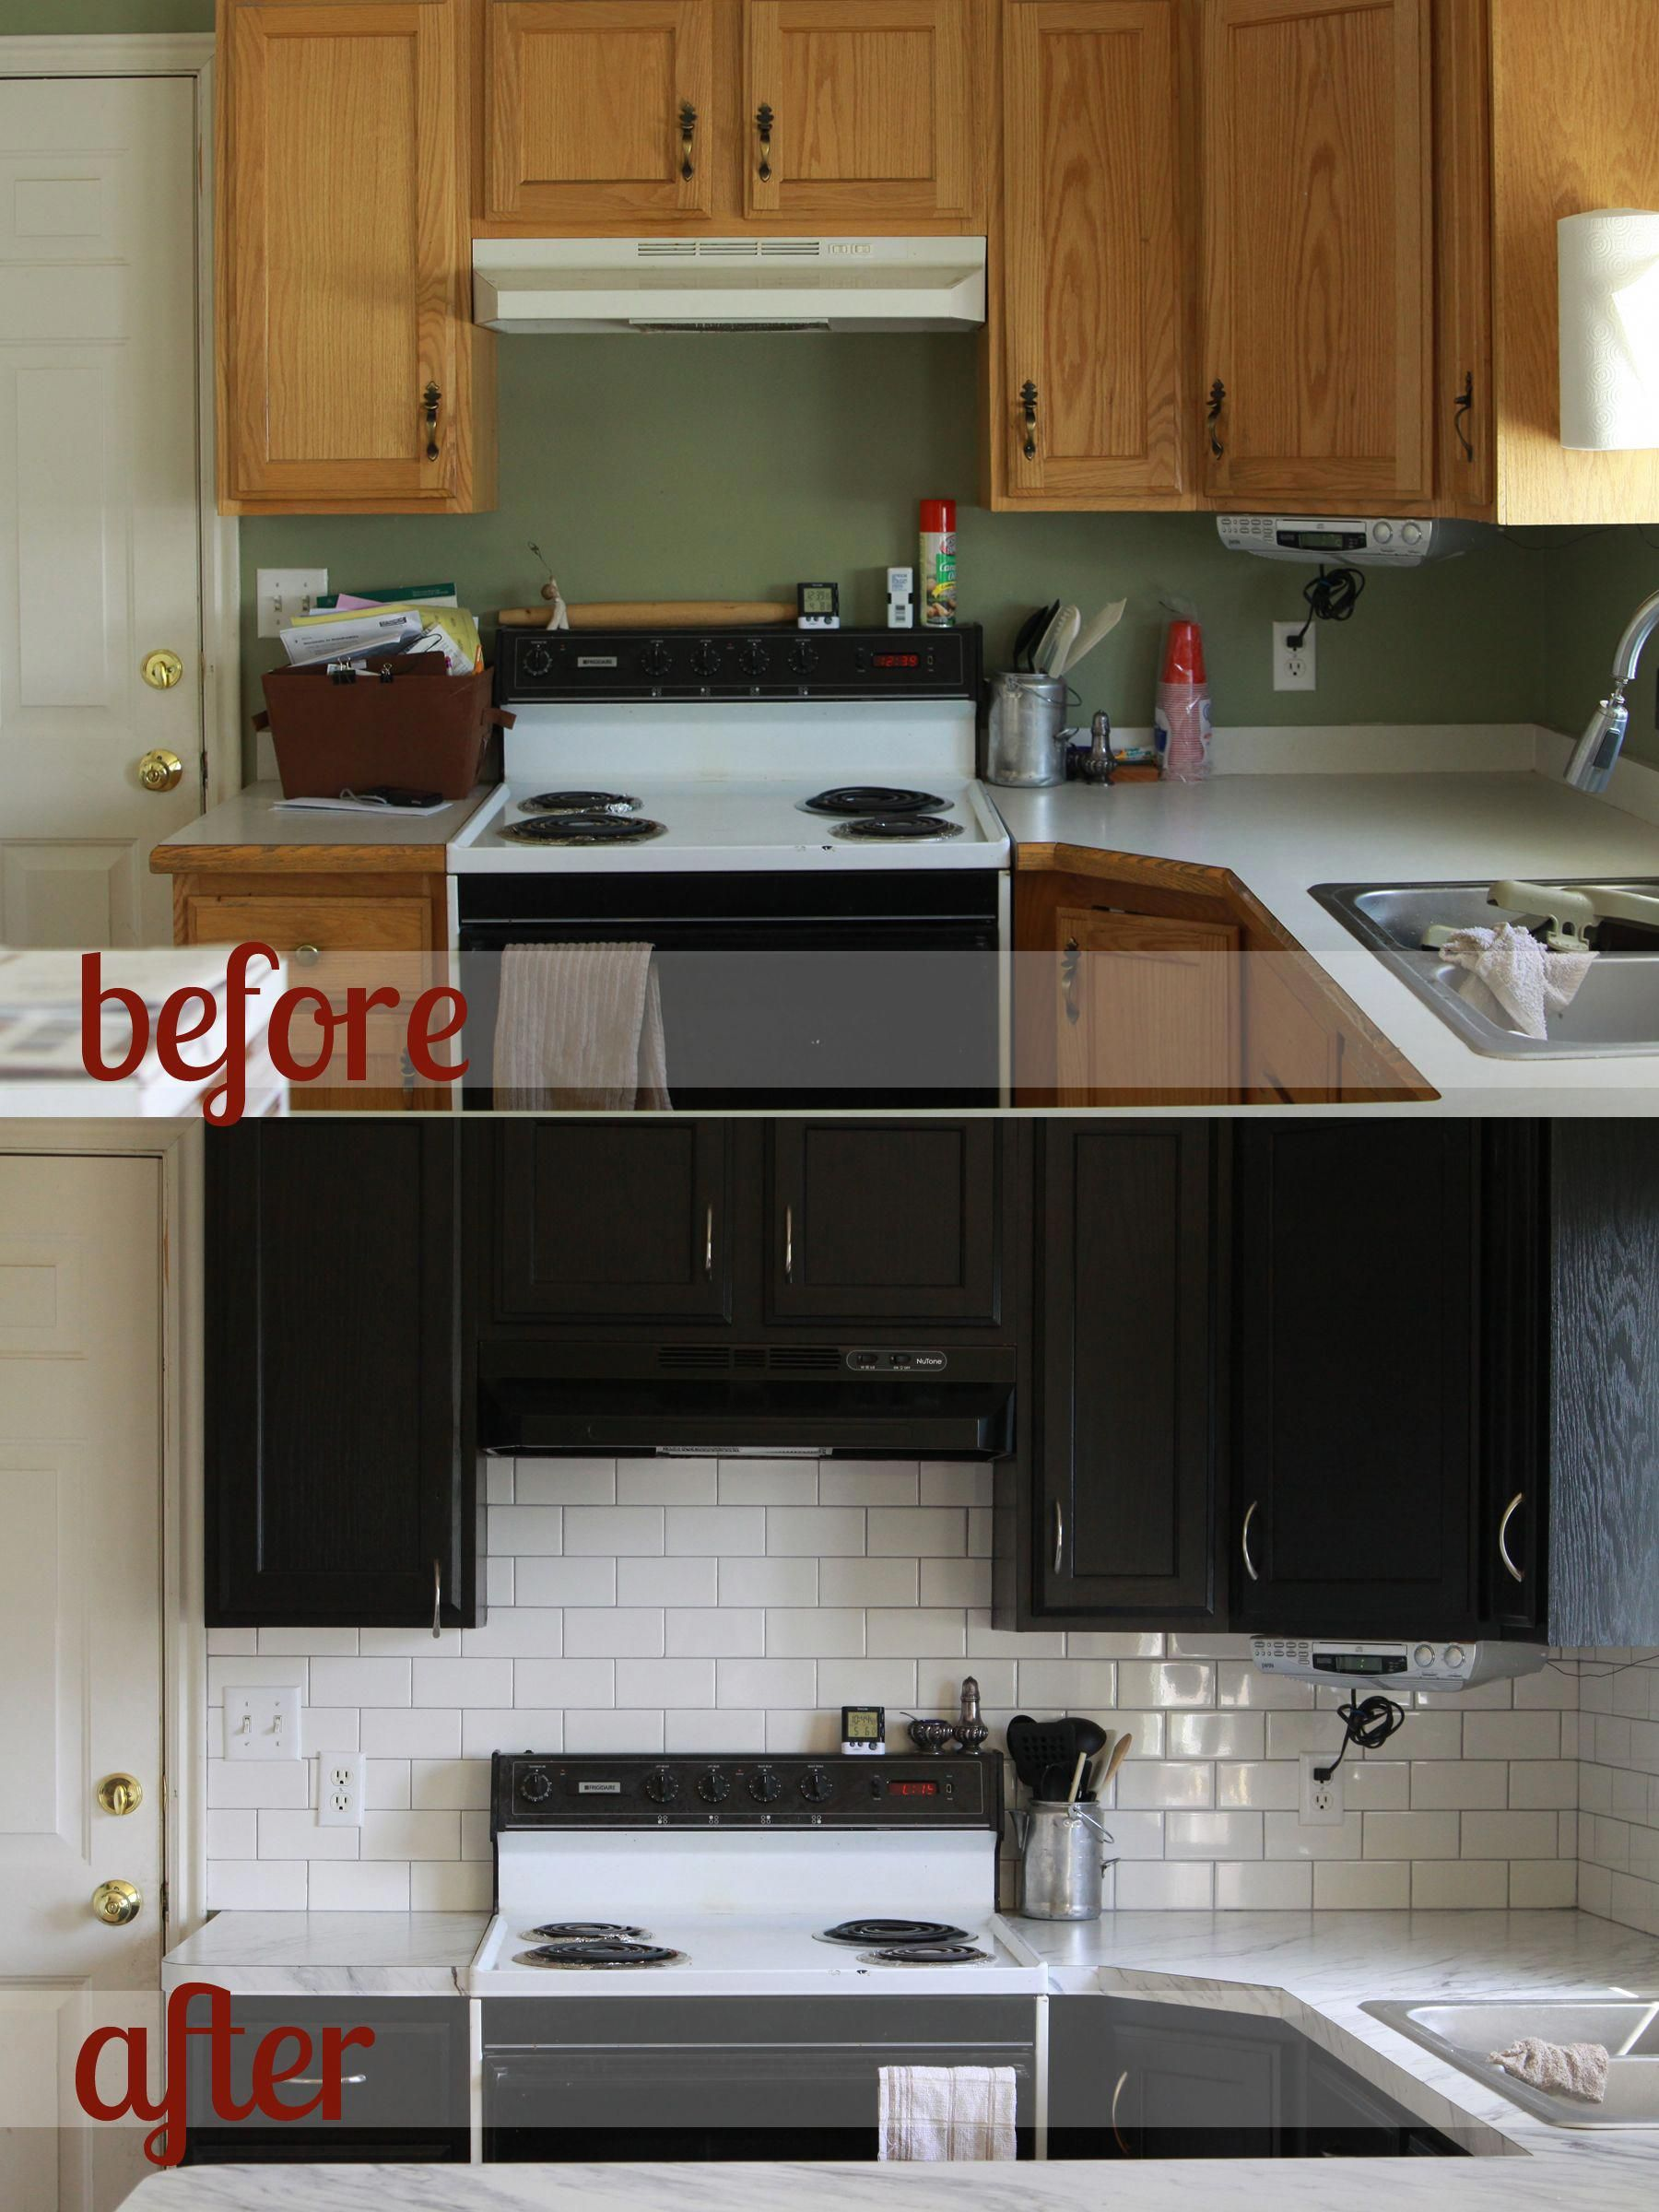 Helpful Review Of Rustoleum Cabinet Transformations System How To Paint Your Kitch Rustoleum Cabinet Transformation Rustoleum Cabinet Cabinet Transformations